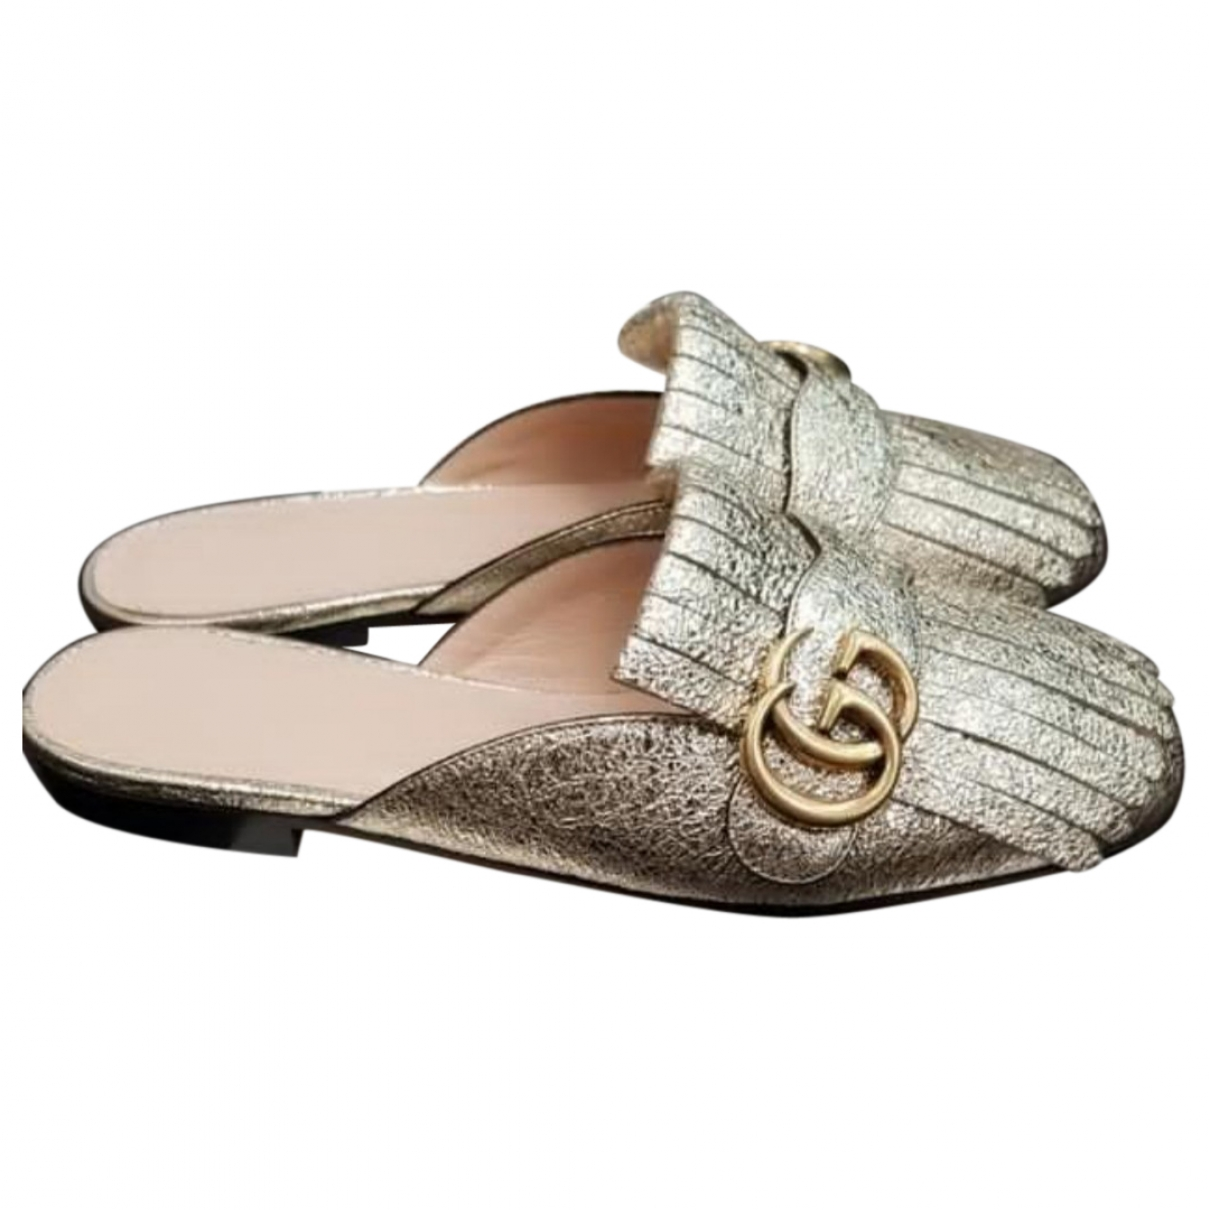 Gucci Marmont Gold Leather Flats for Women 36.5 EU